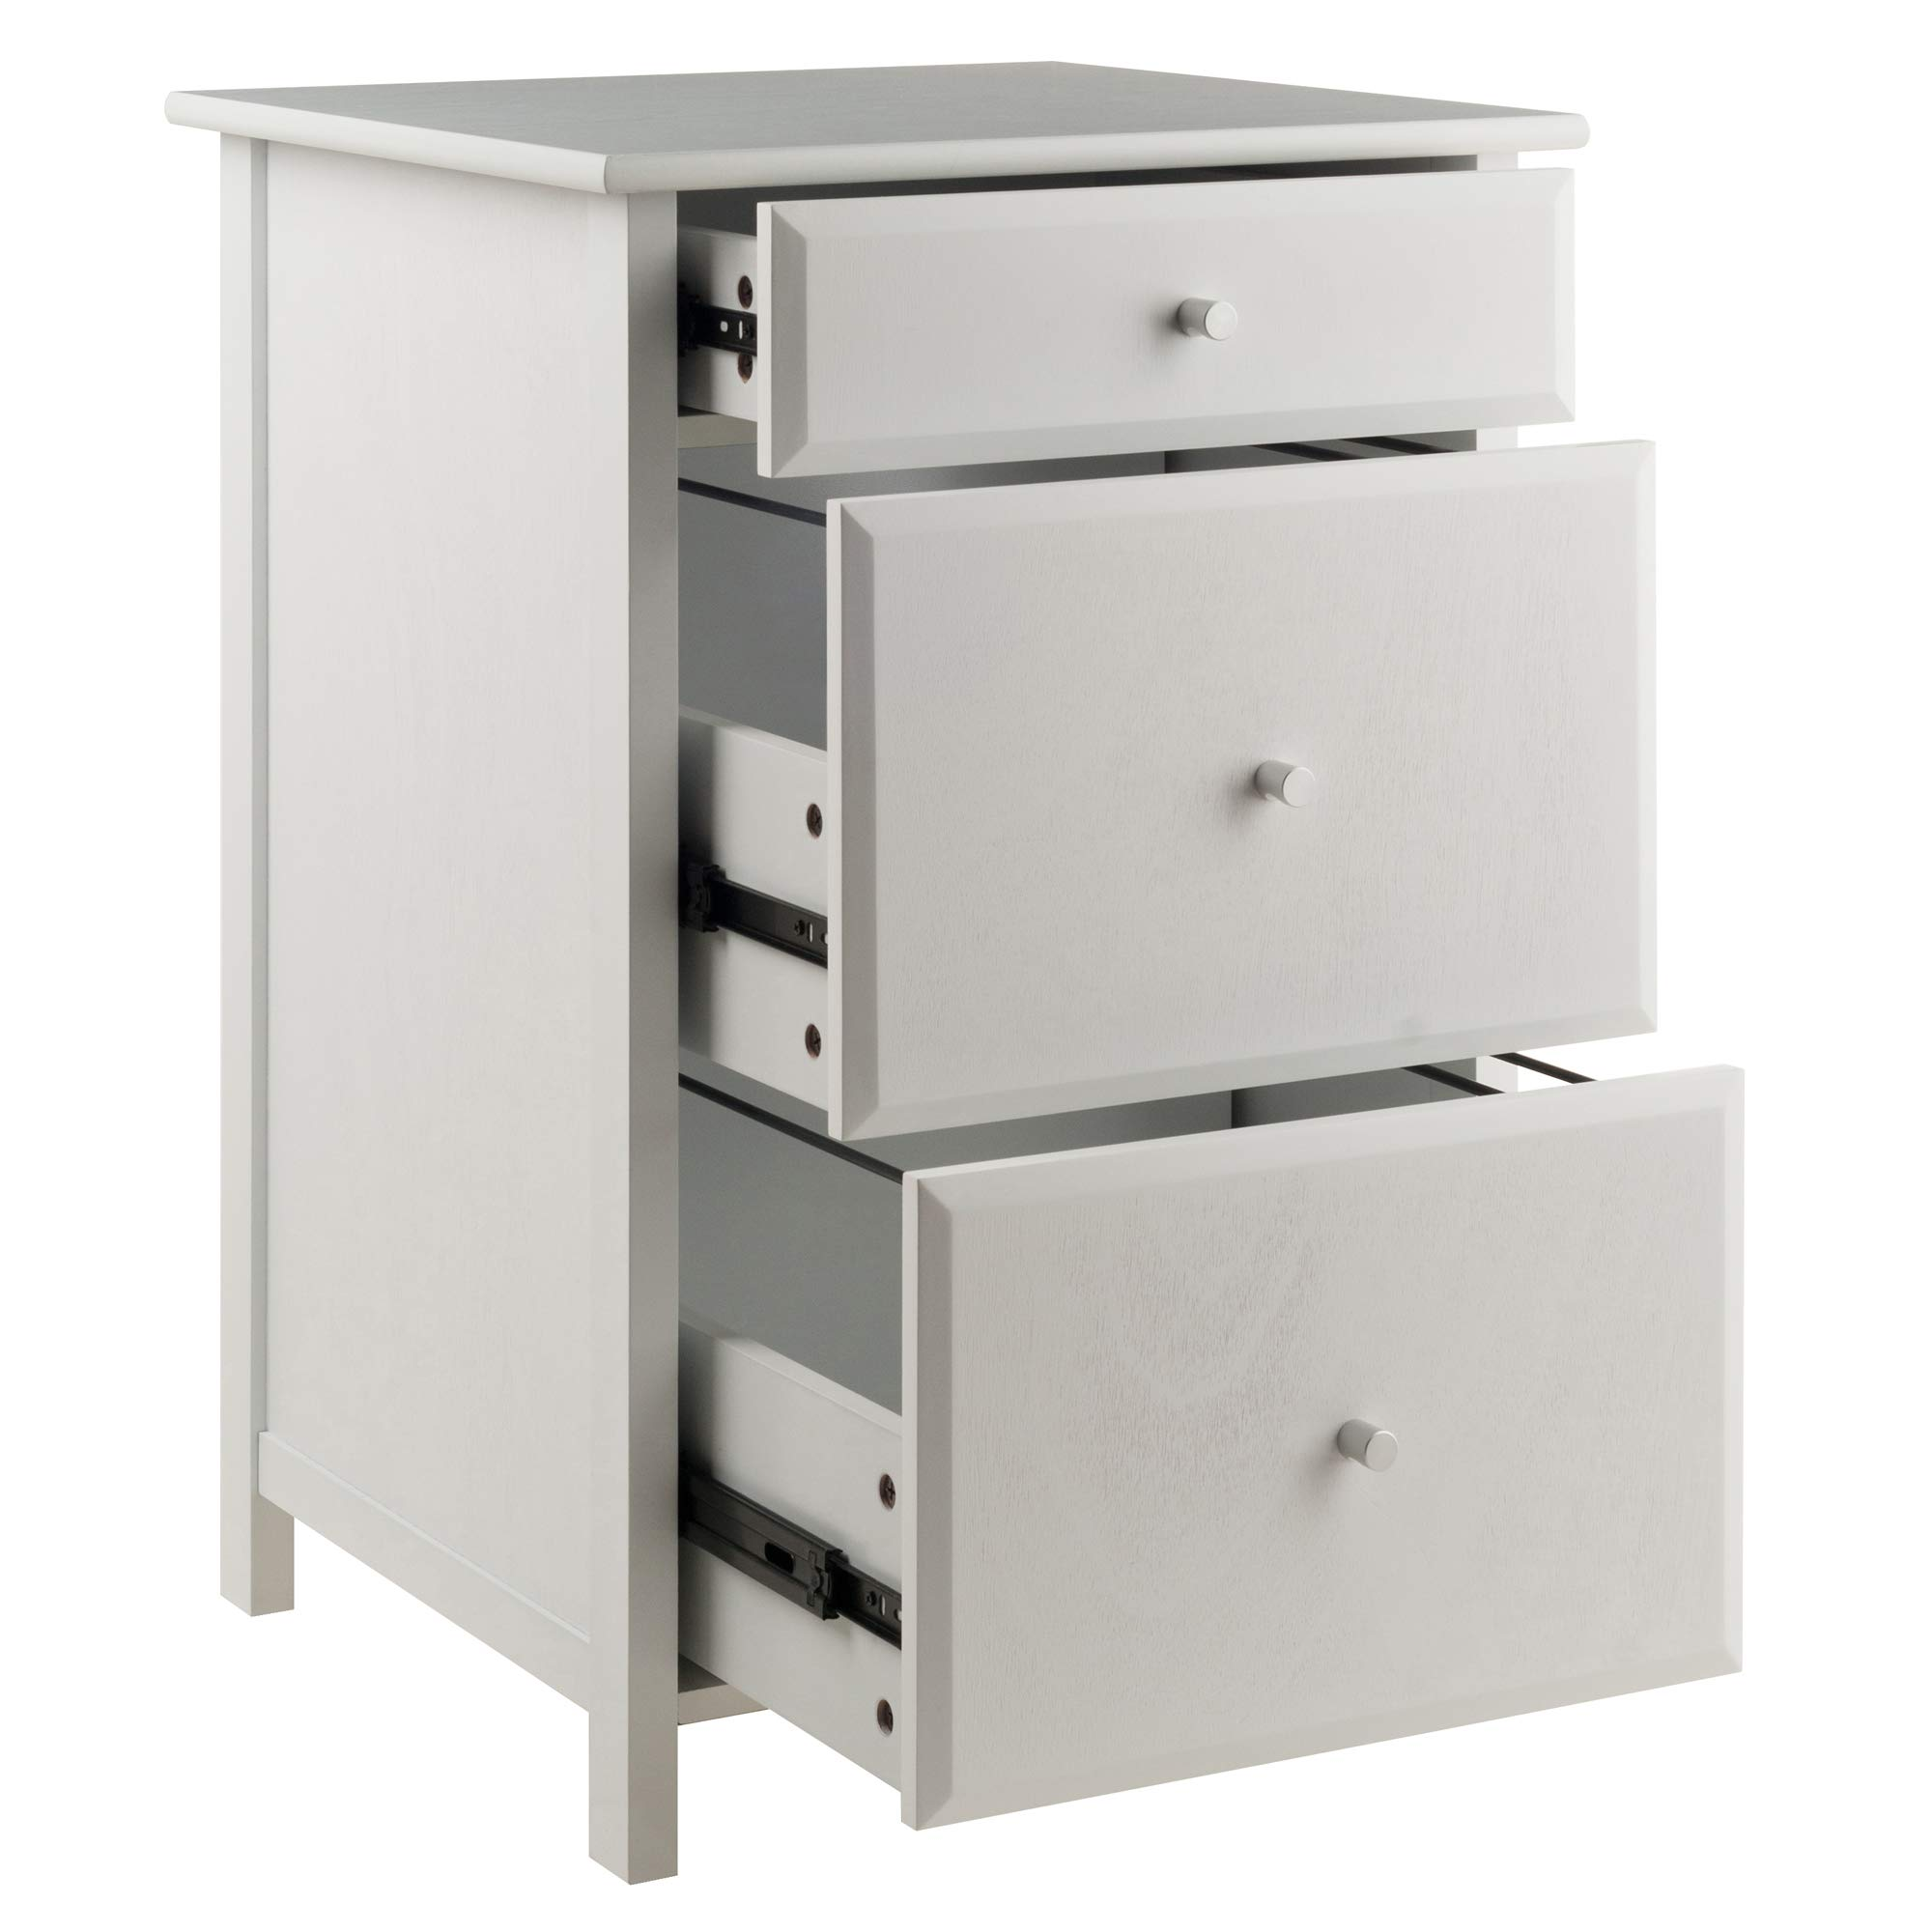 Winsome Wood 10321 Delta File Cabinet White Home Office, by Winsome Wood (Image #3)